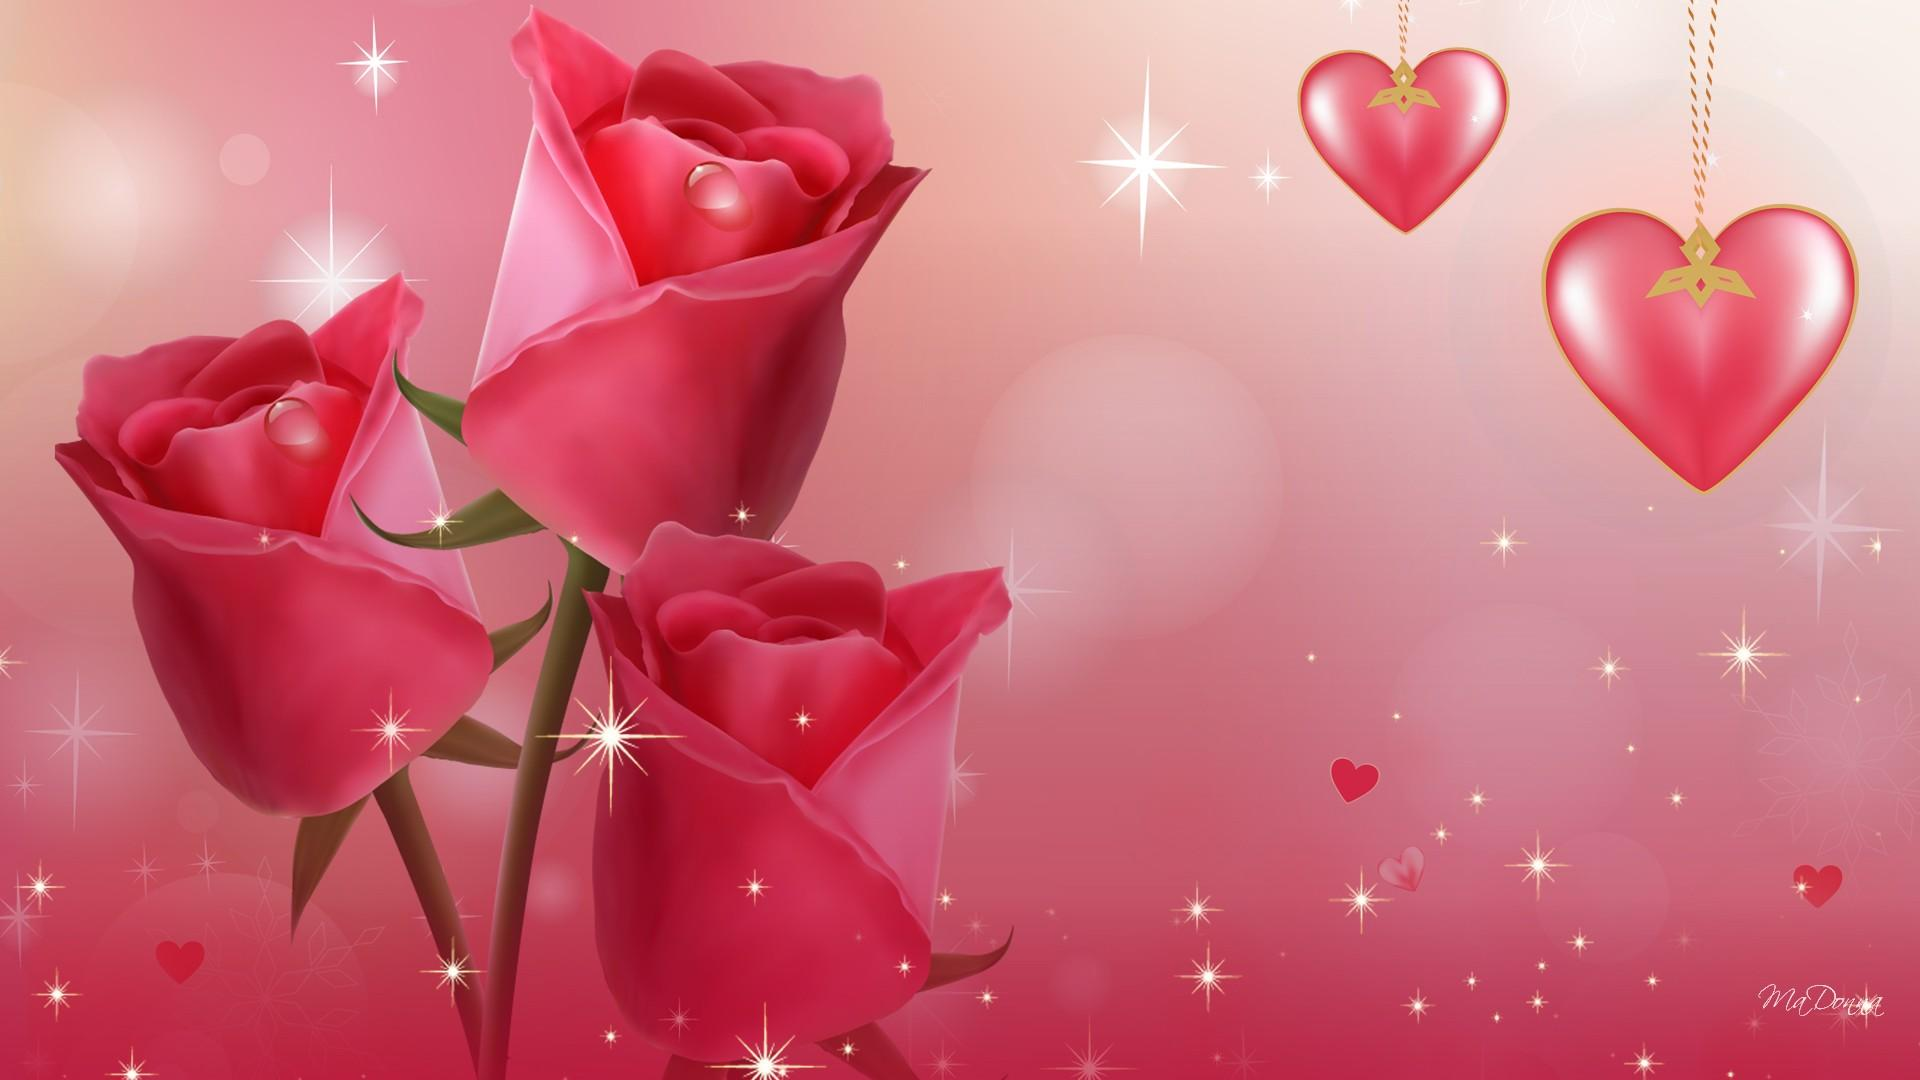 Beautiful Love Gift Wallpaper : Beautiful Love Wallpaper HD - WallpaperSafari